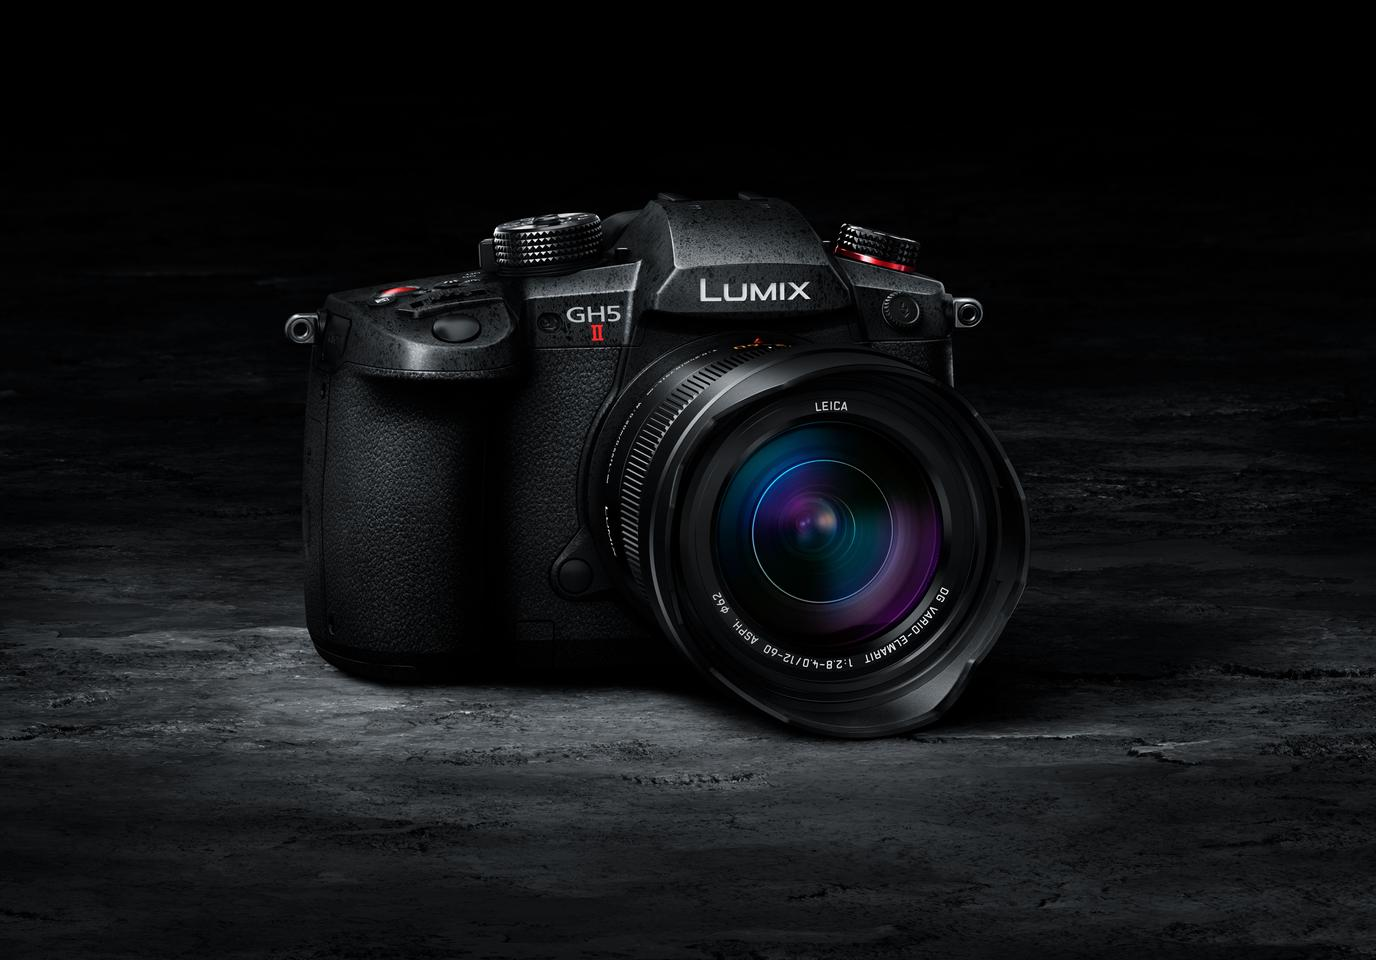 The Lumix GH5M2 is even more of a video powerhouse than its predecessor